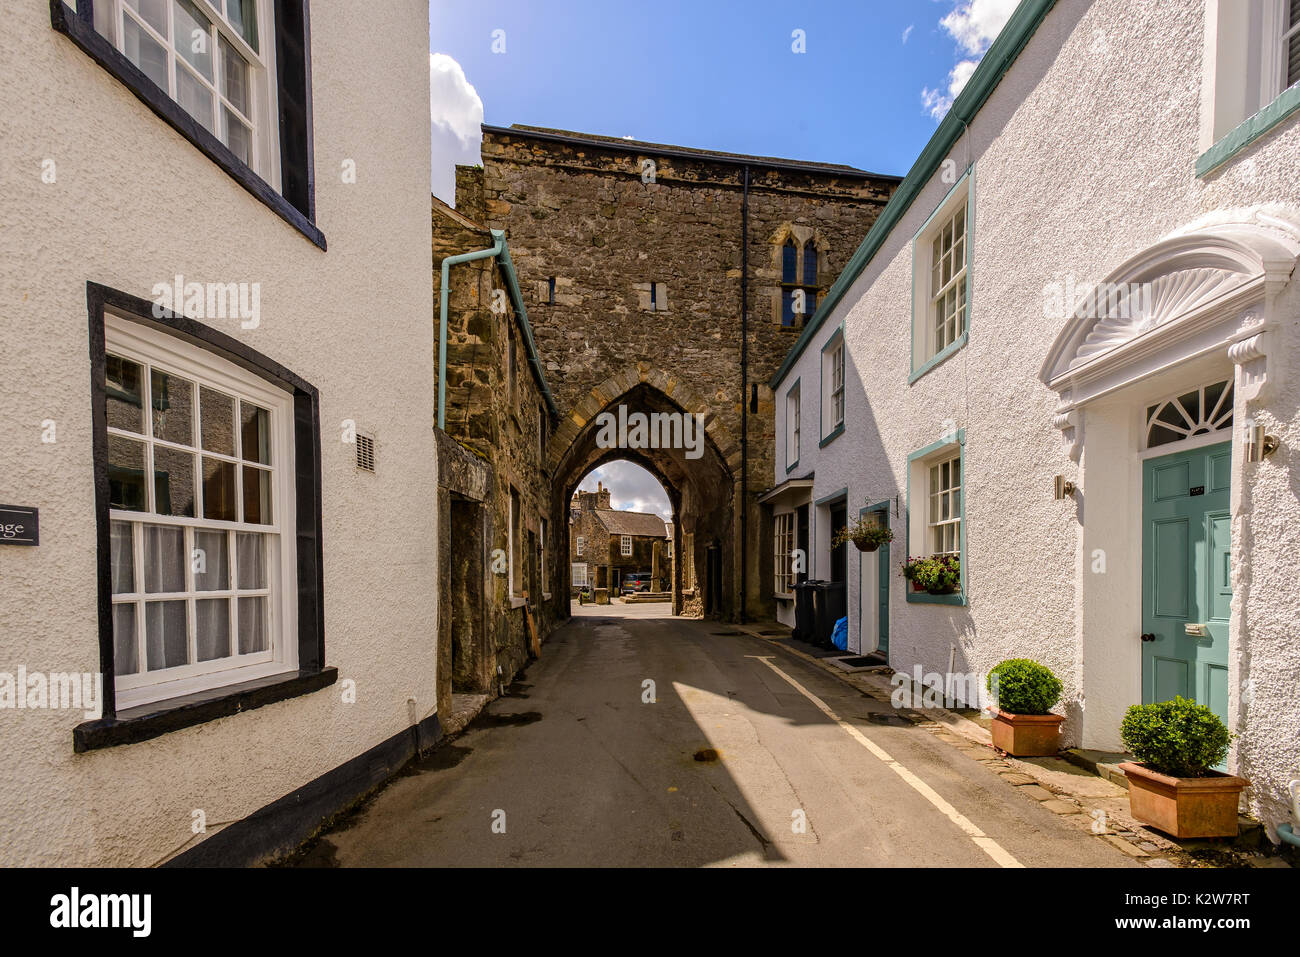 Lovely old street in Cartmel village with view through stone arch into main square - Stock Image